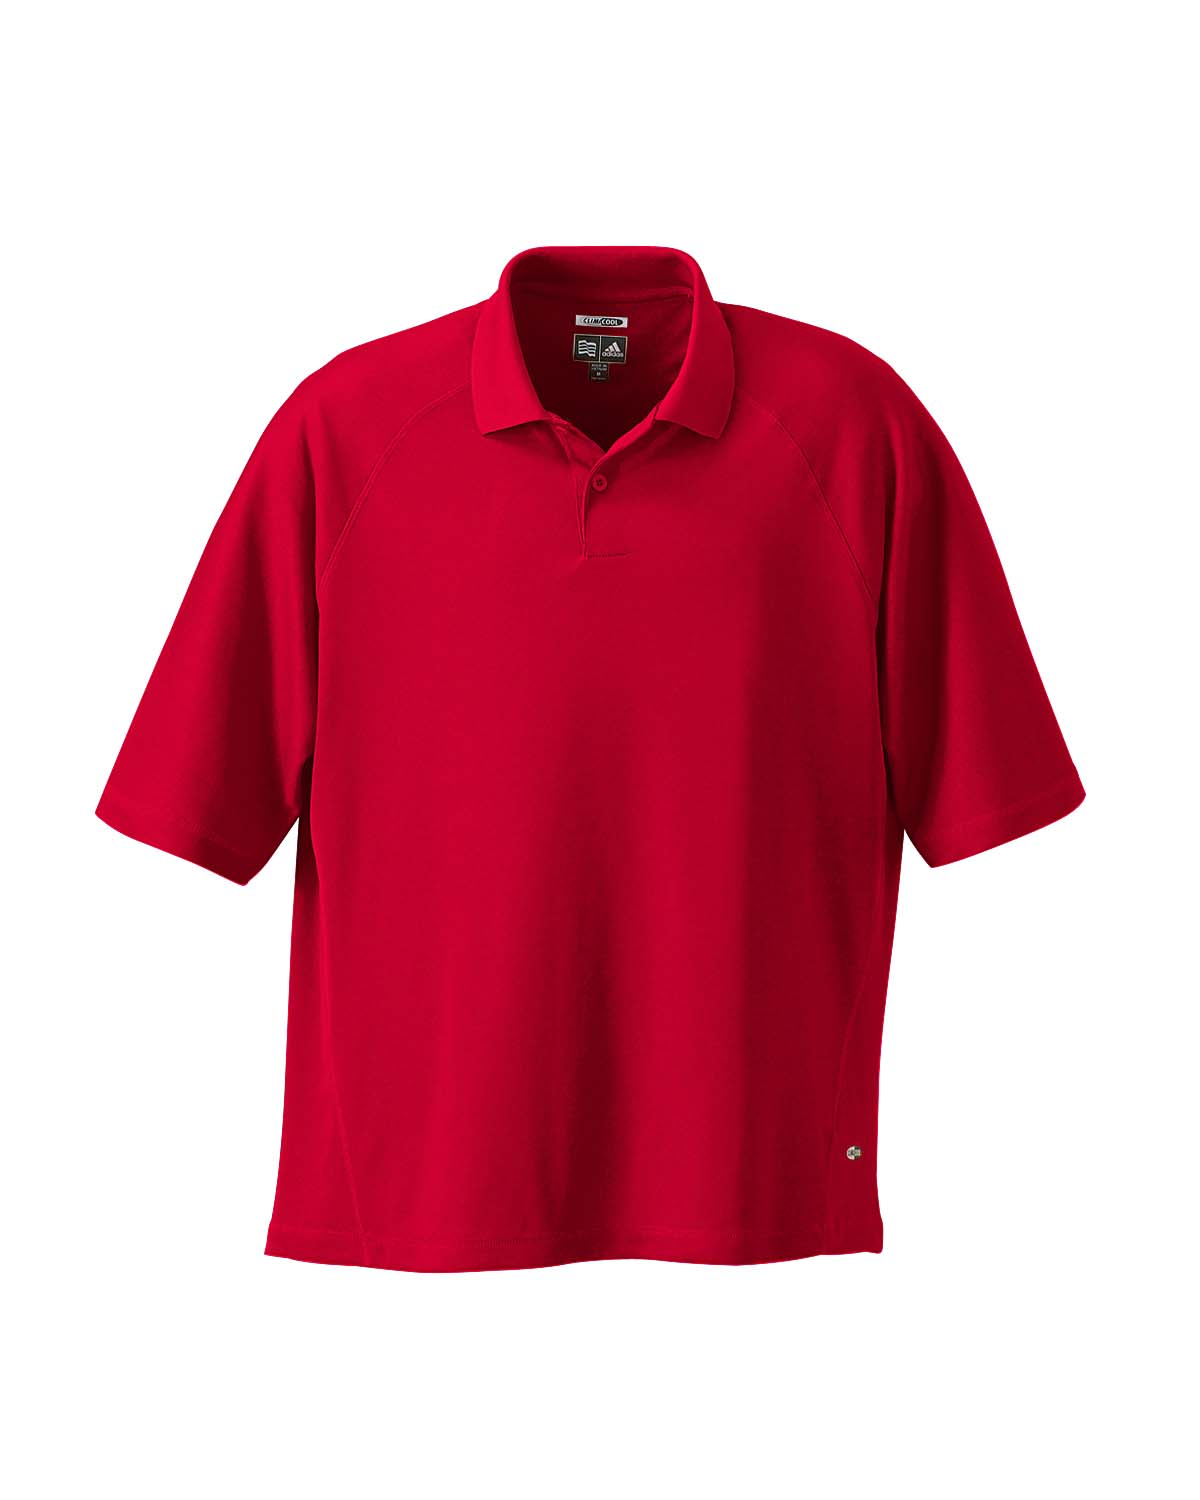 Adidas Golf Men 39 S Climacool Textured Solid Polo